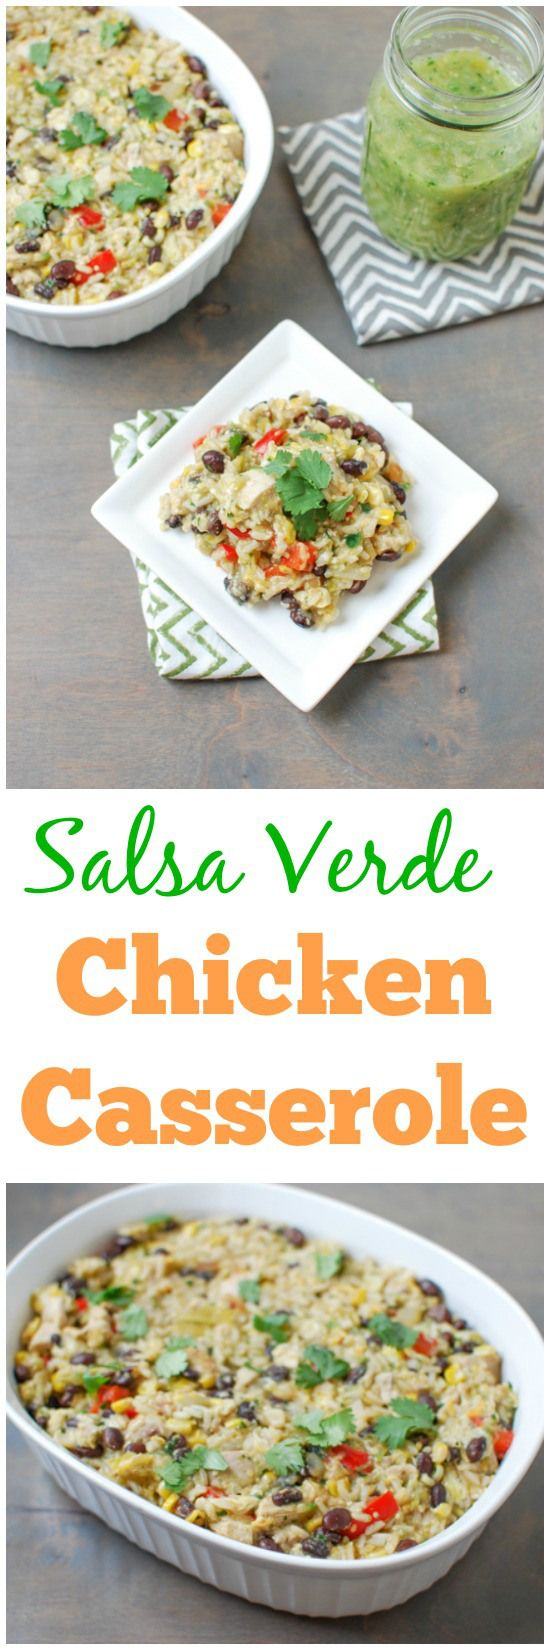 This Salsa Verde Chicken Casserole is easy to make and full of flavor! The perfect recipe for a busy weeknight dinner.